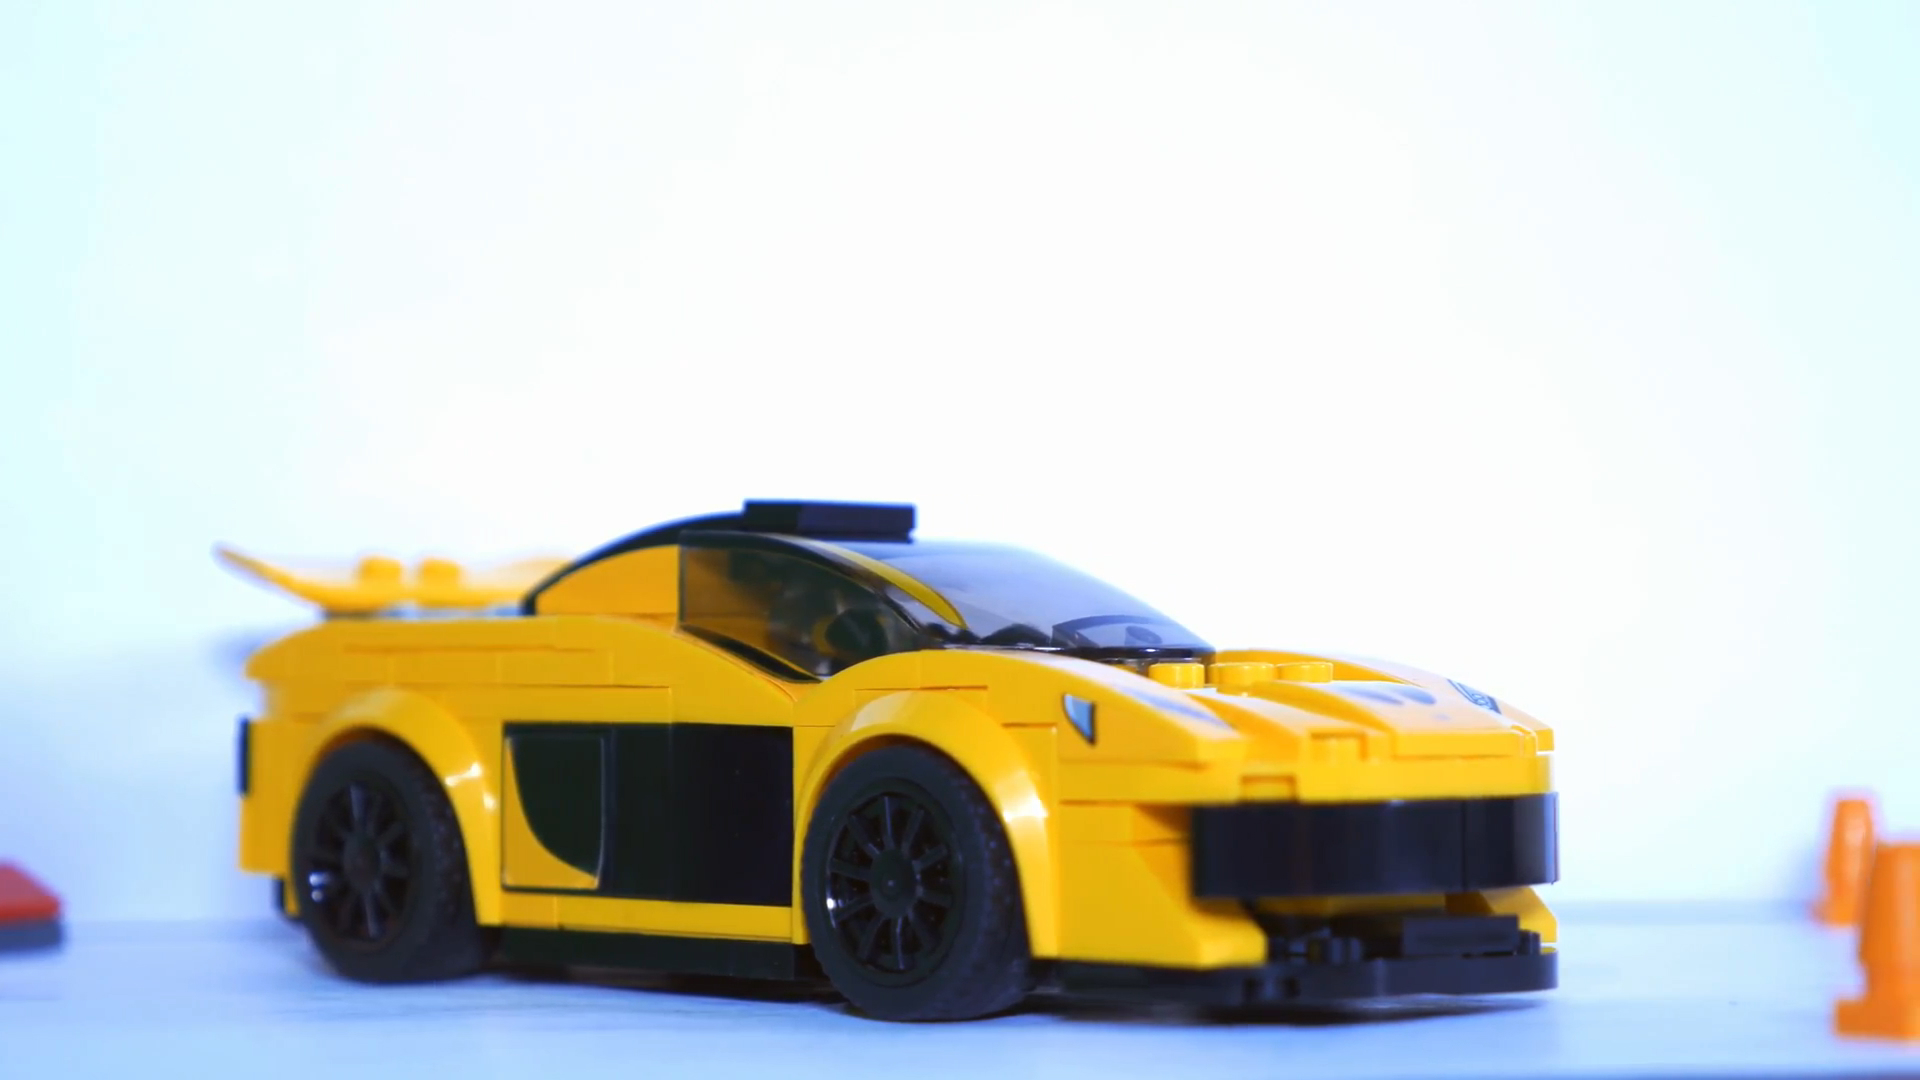 Lego Speed Champions McLaren P1 Build | Autoblog